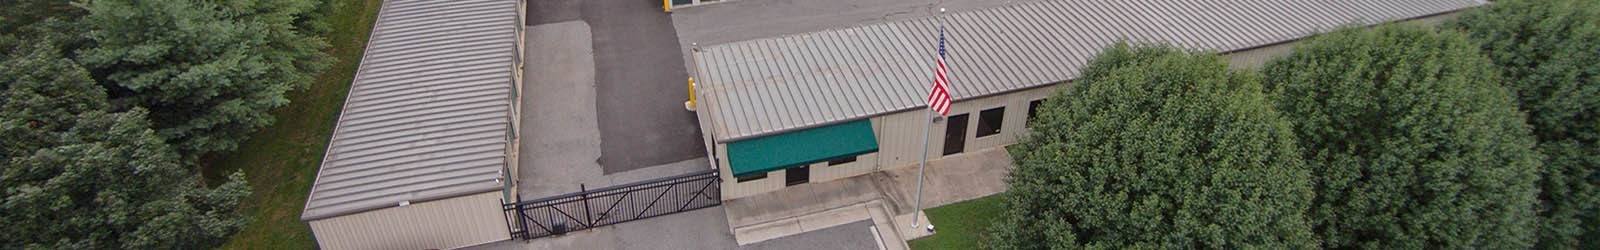 Professional management services at Virginia Varsity Self Storage